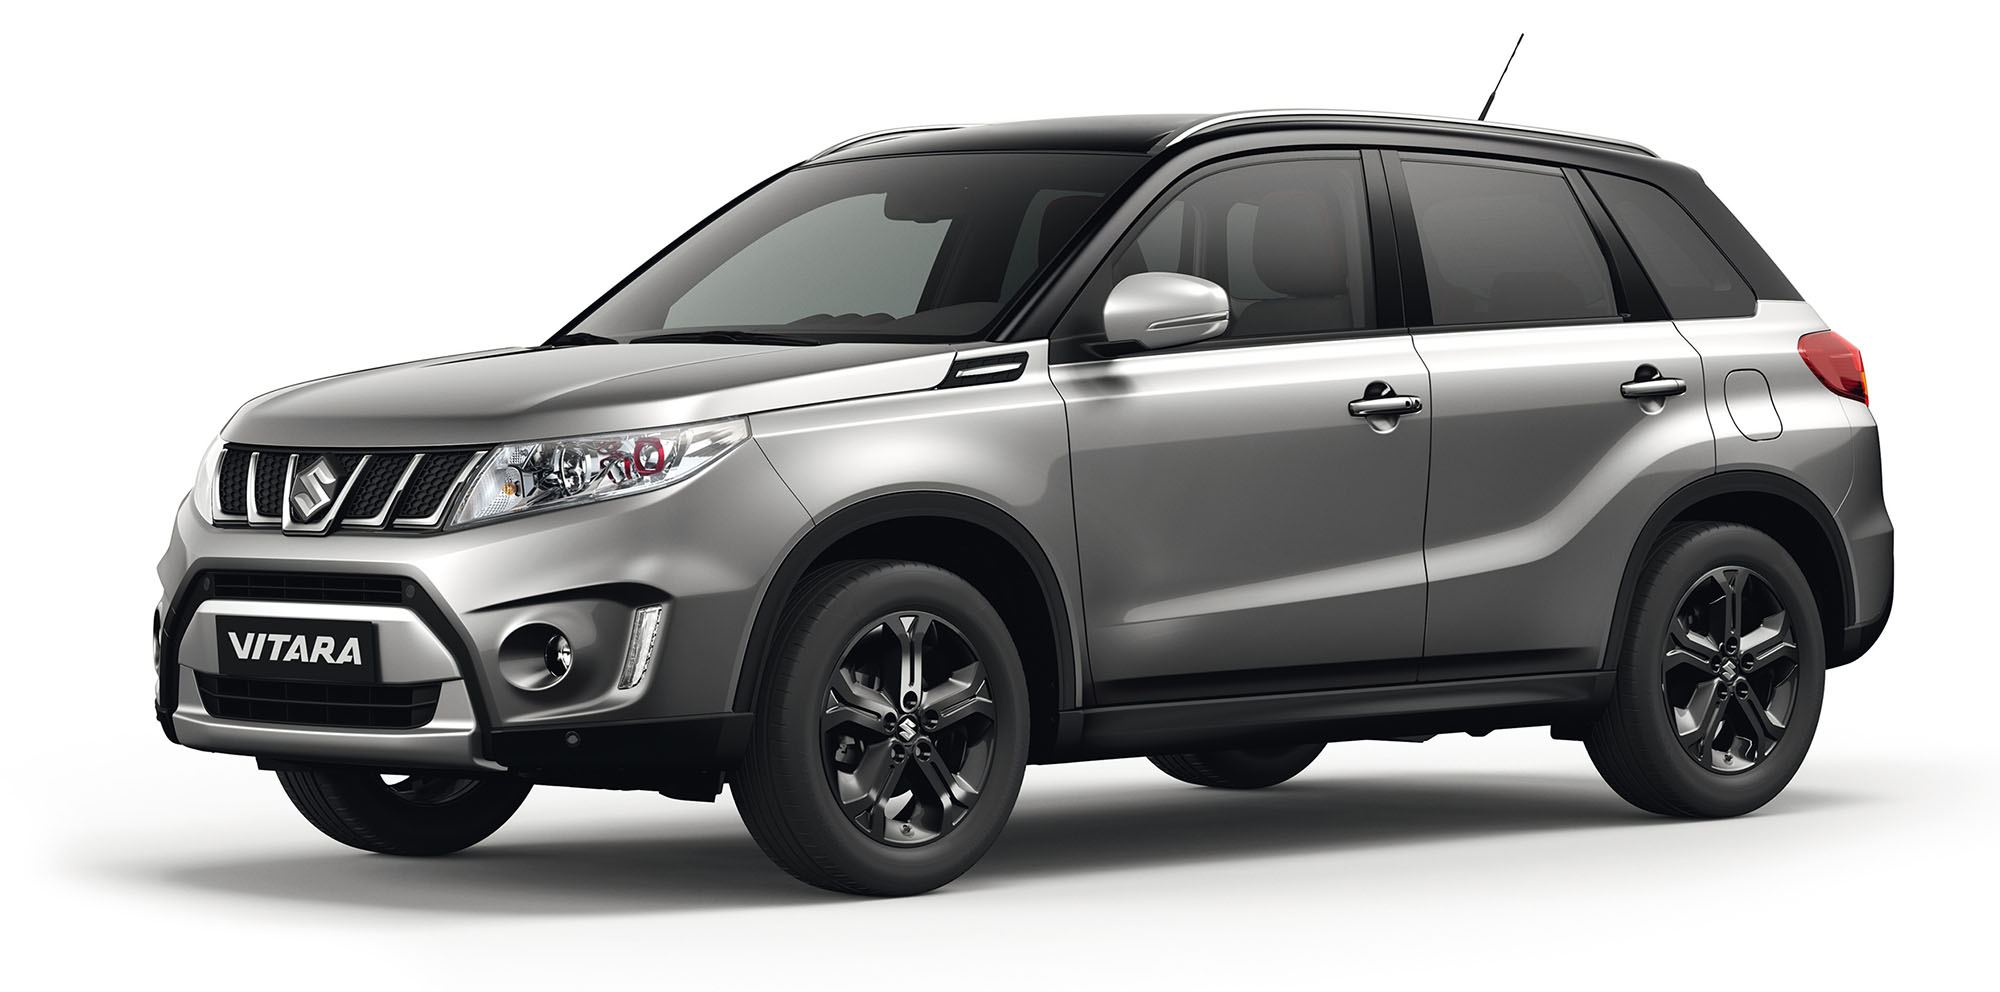 suzuki cars suzuki vitara turbo confirmed for australia. Black Bedroom Furniture Sets. Home Design Ideas